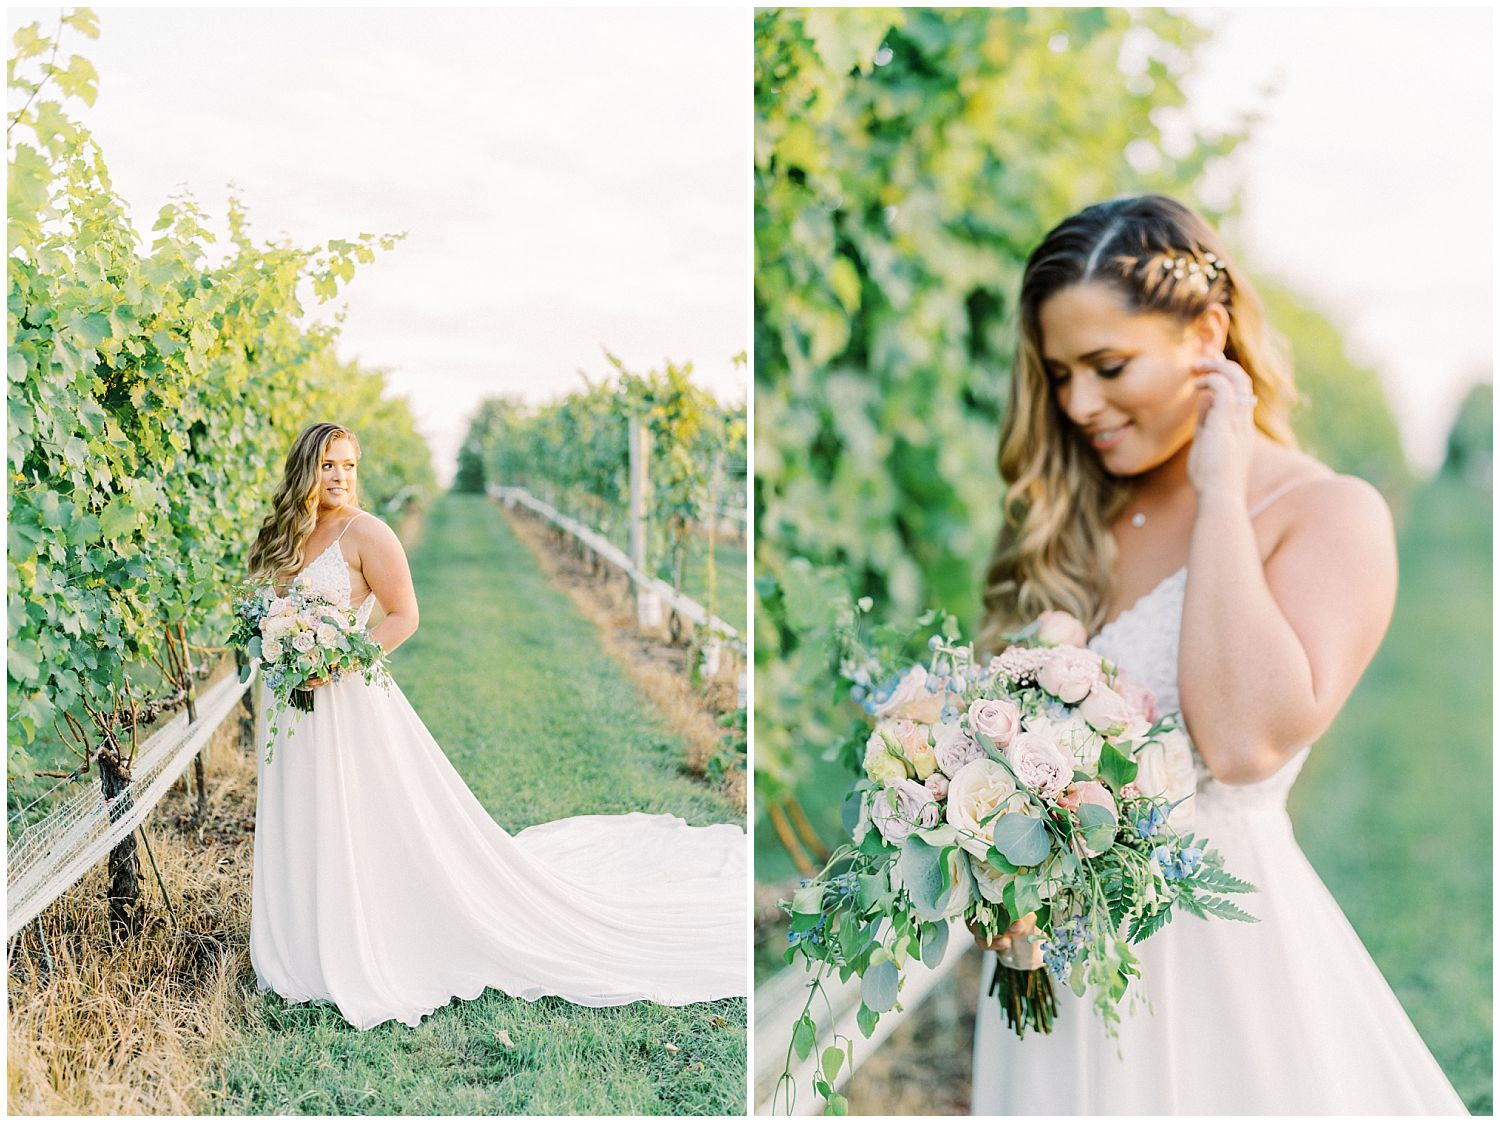 Wedding photography in vineyards at 8 Chains North Winery